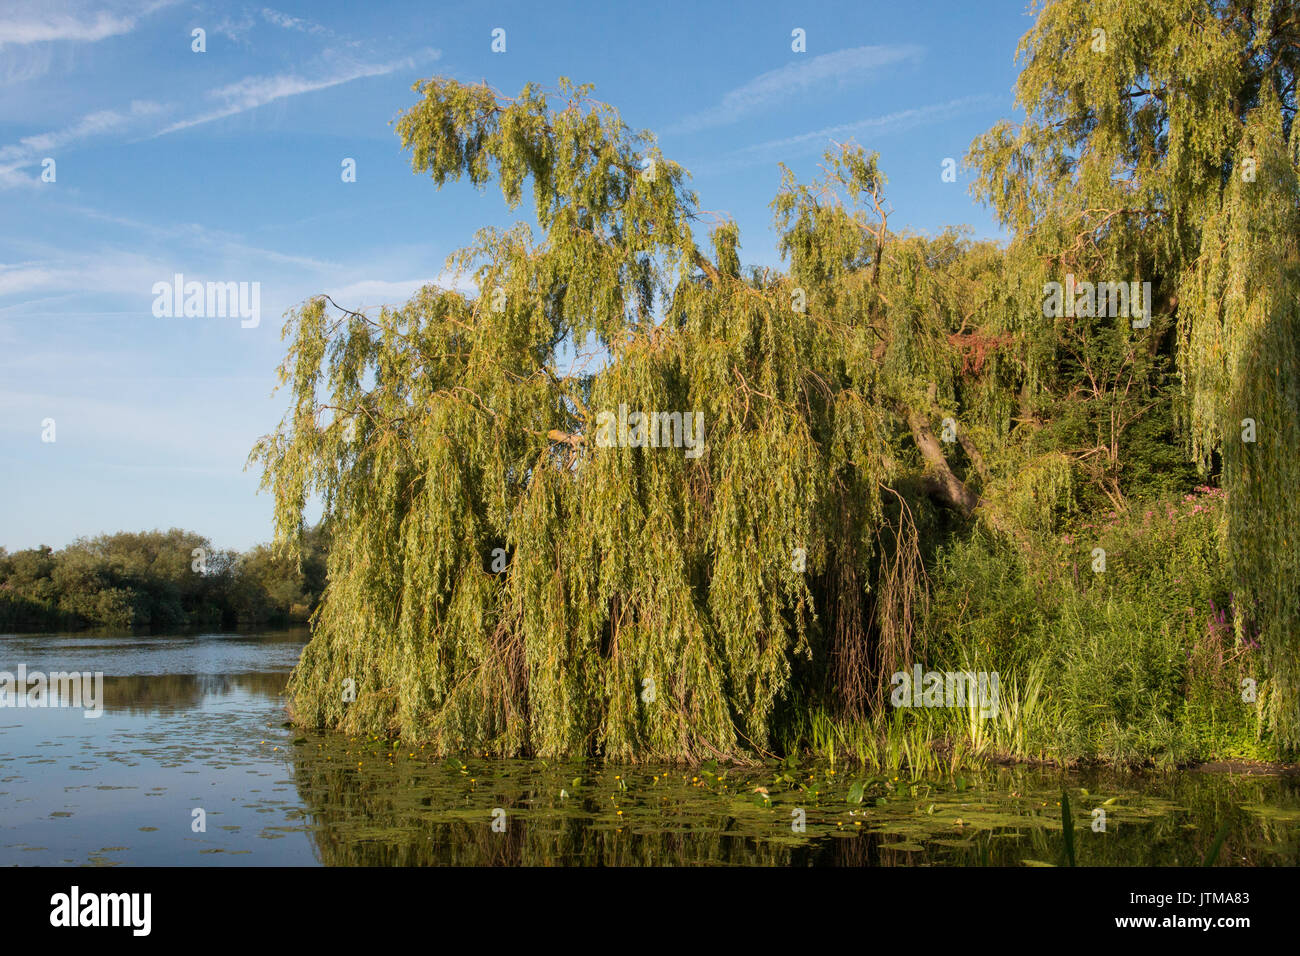 Weeping Willow (Salix babylonica) on the banks of the River Trent, Nottinghamshire - Stock Image